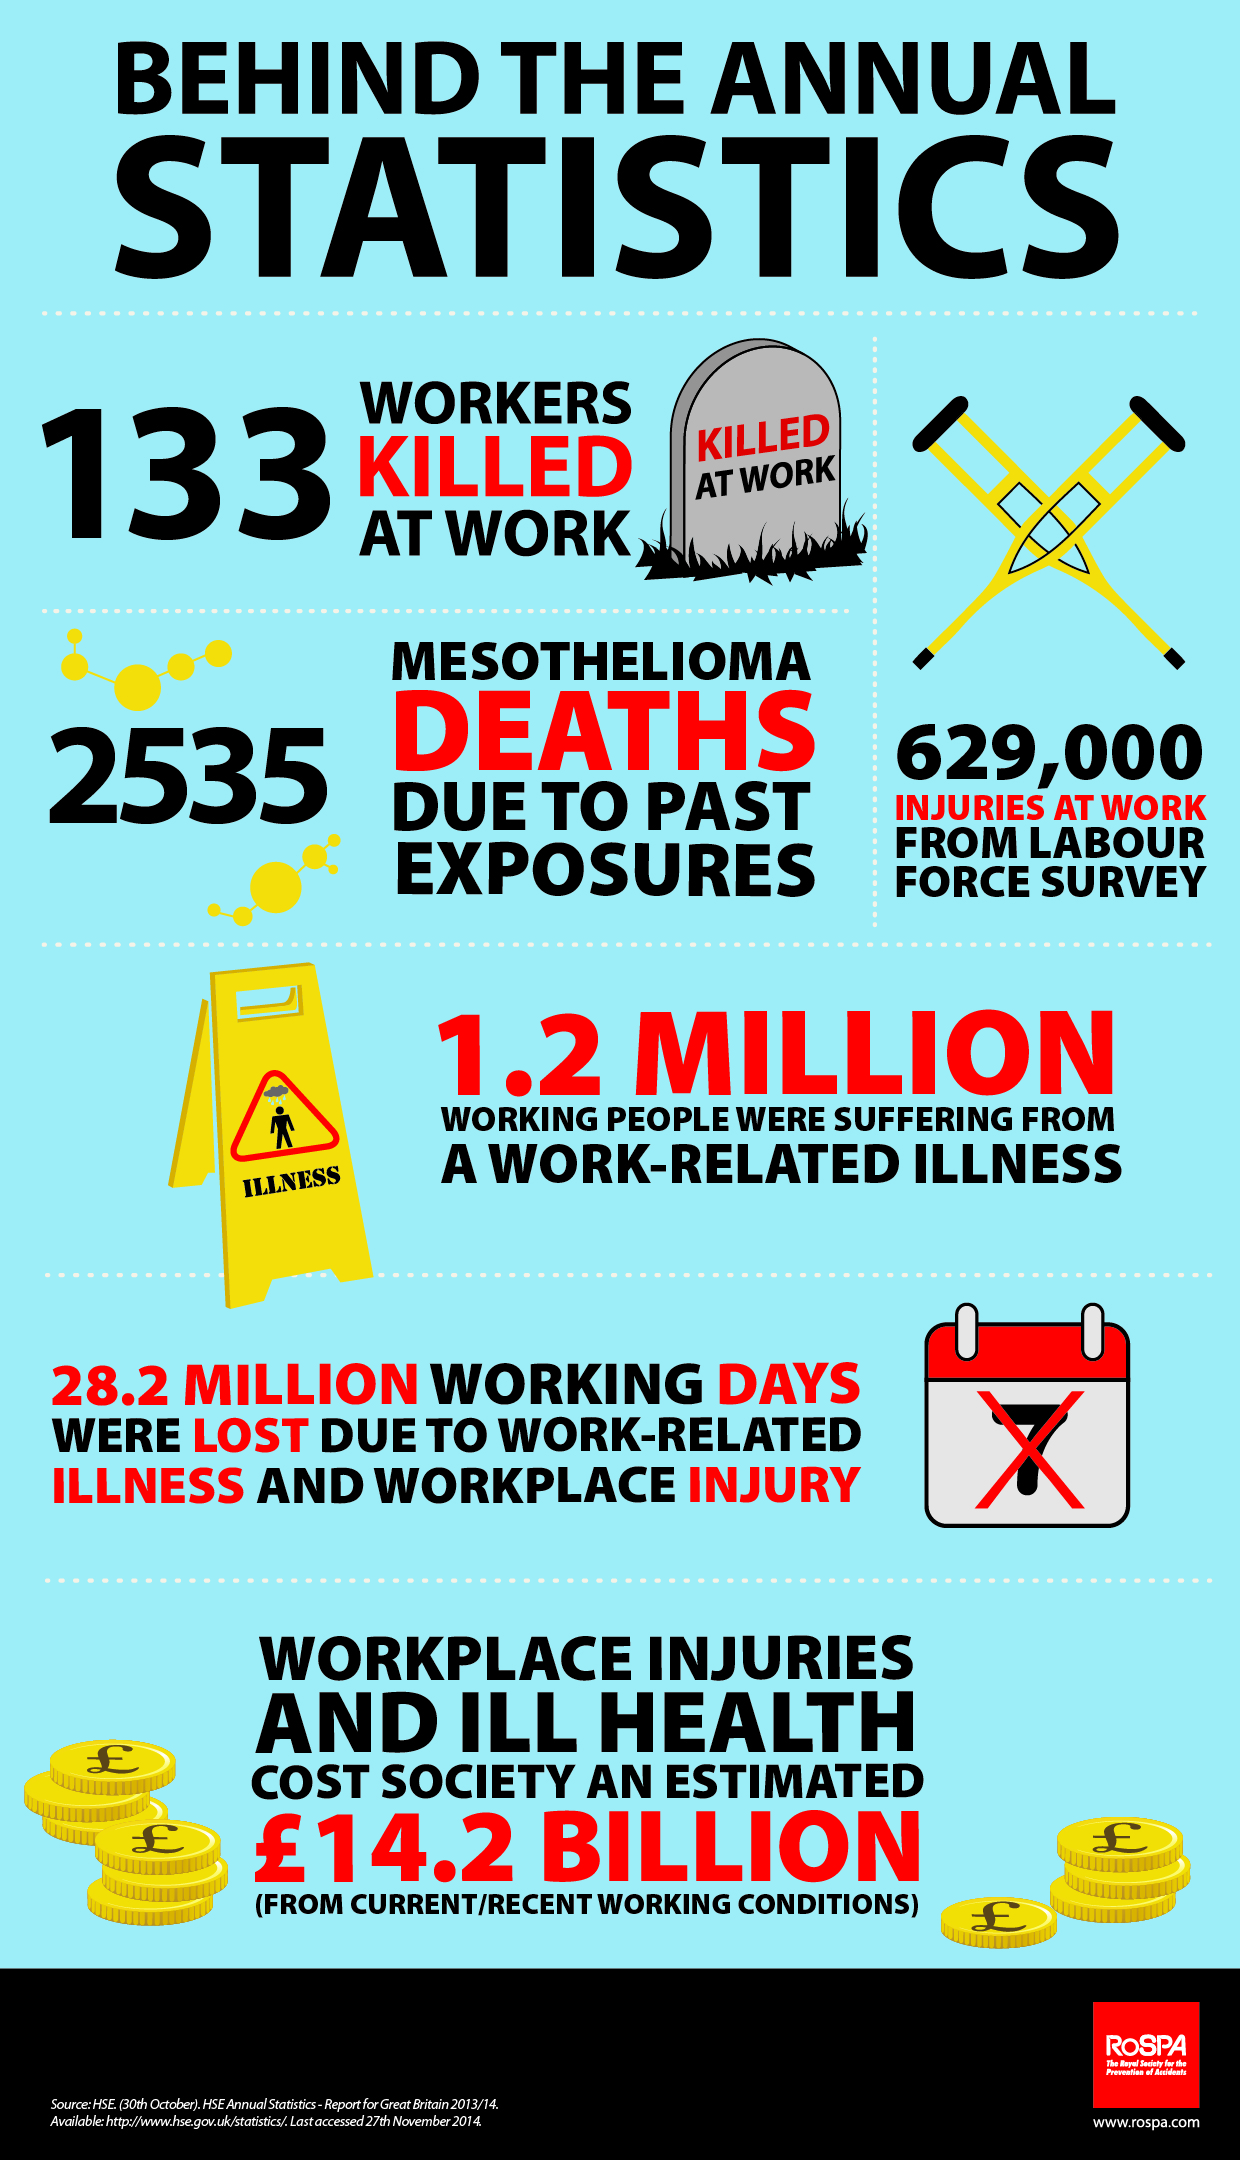 health and safety manual handling regulations